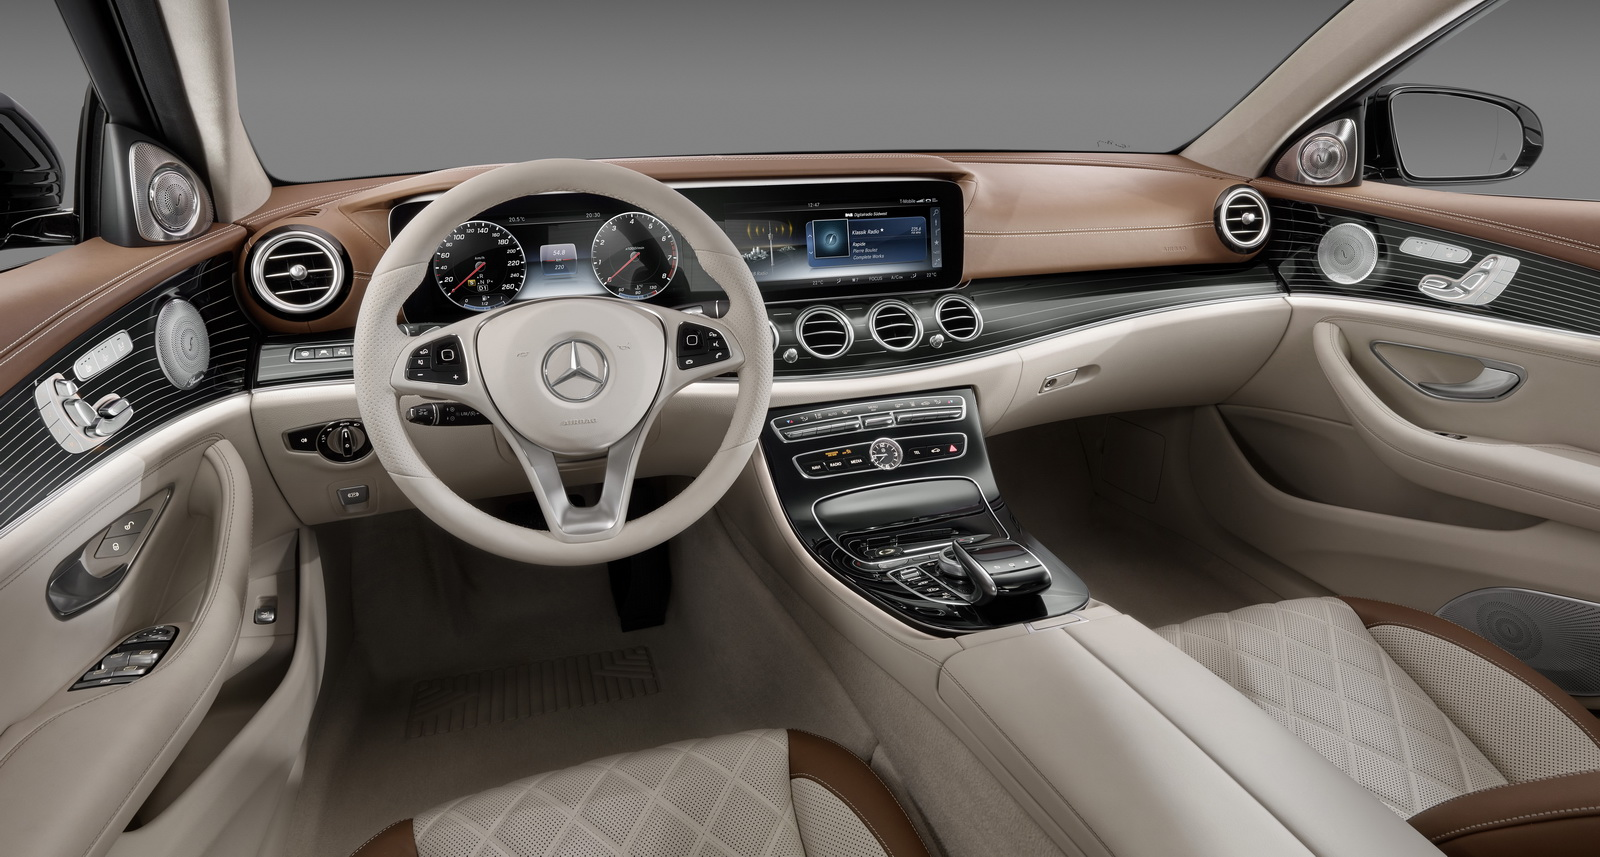 2017 mercedes benz e class dashboard shown at ces